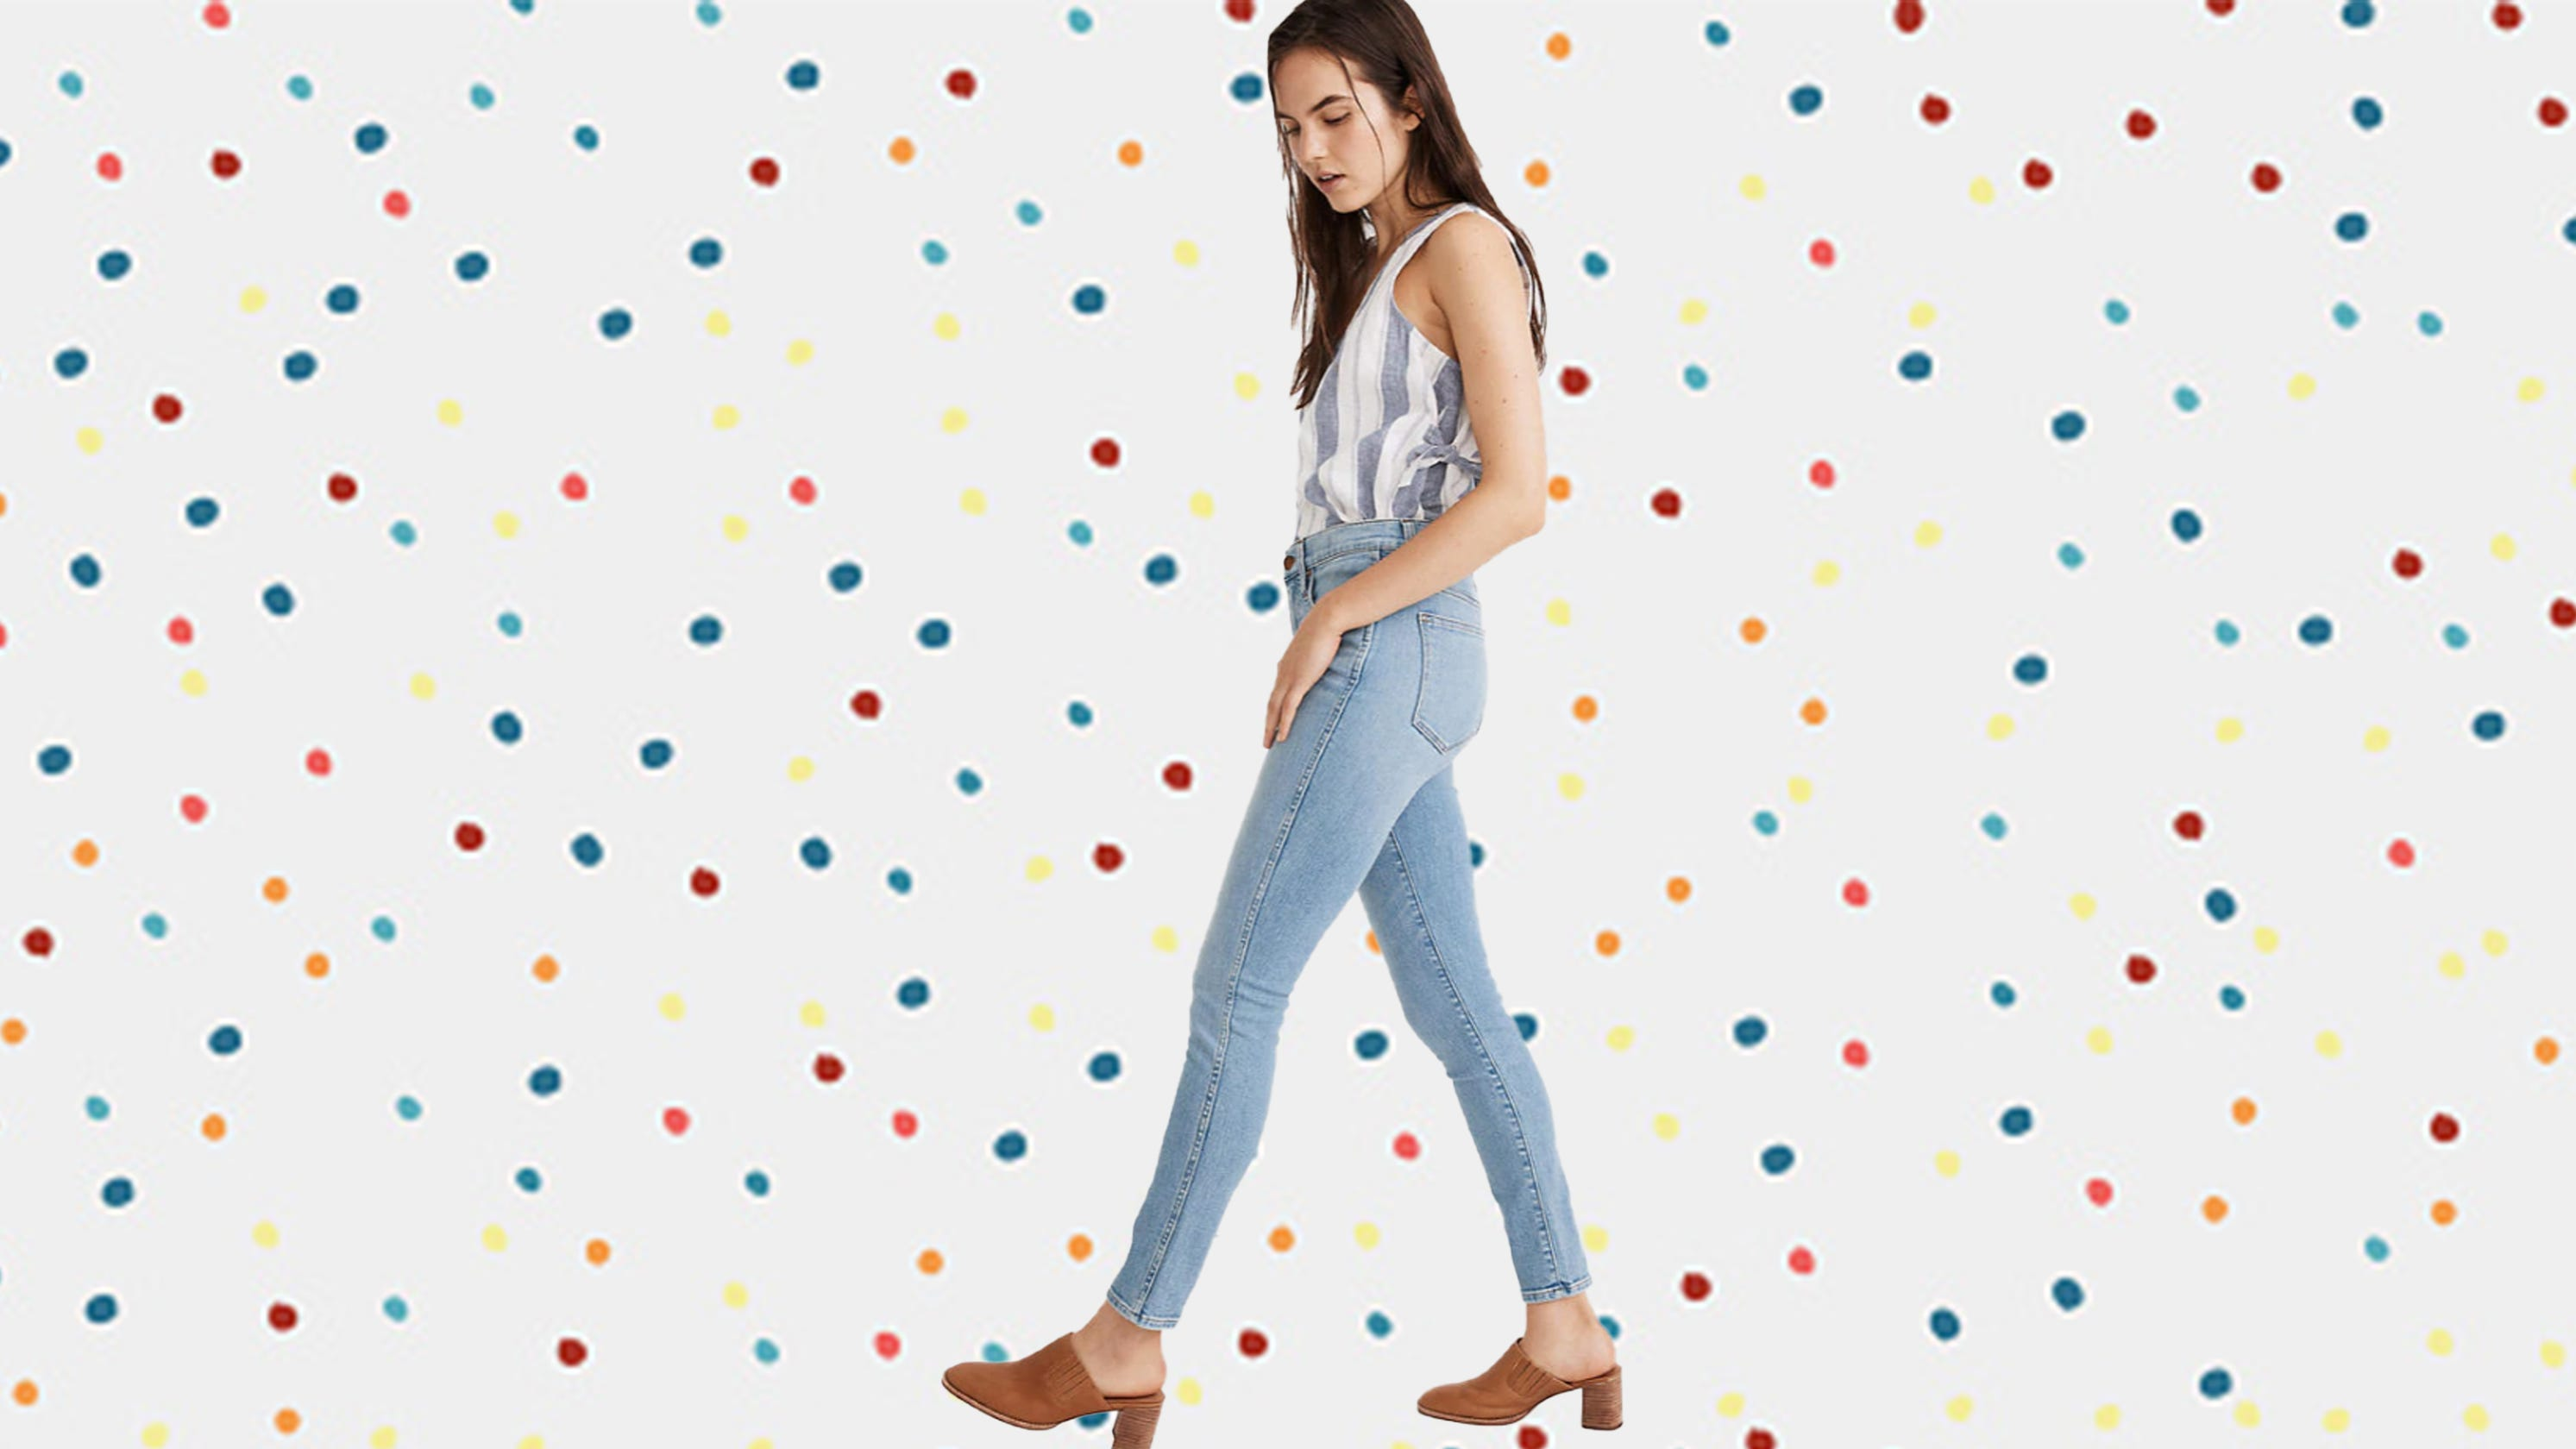 Madewell promo code: Take an additional discount on sale items